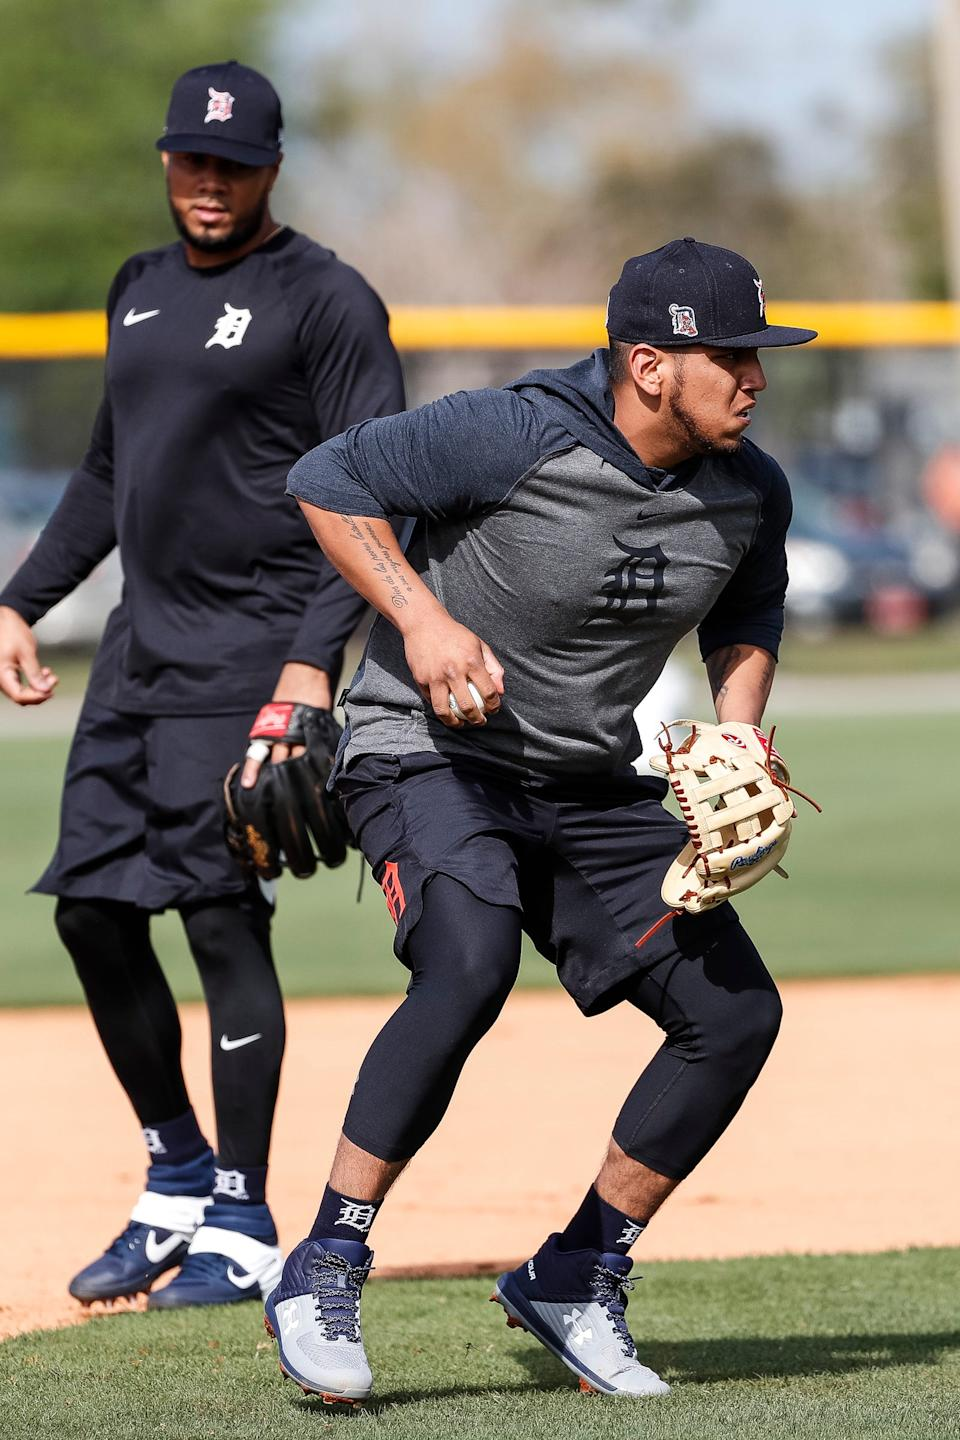 Infielder Isaac Paredes practices during Tigers spring training in Lakeland, Fla., on Feb. 15, 2020.